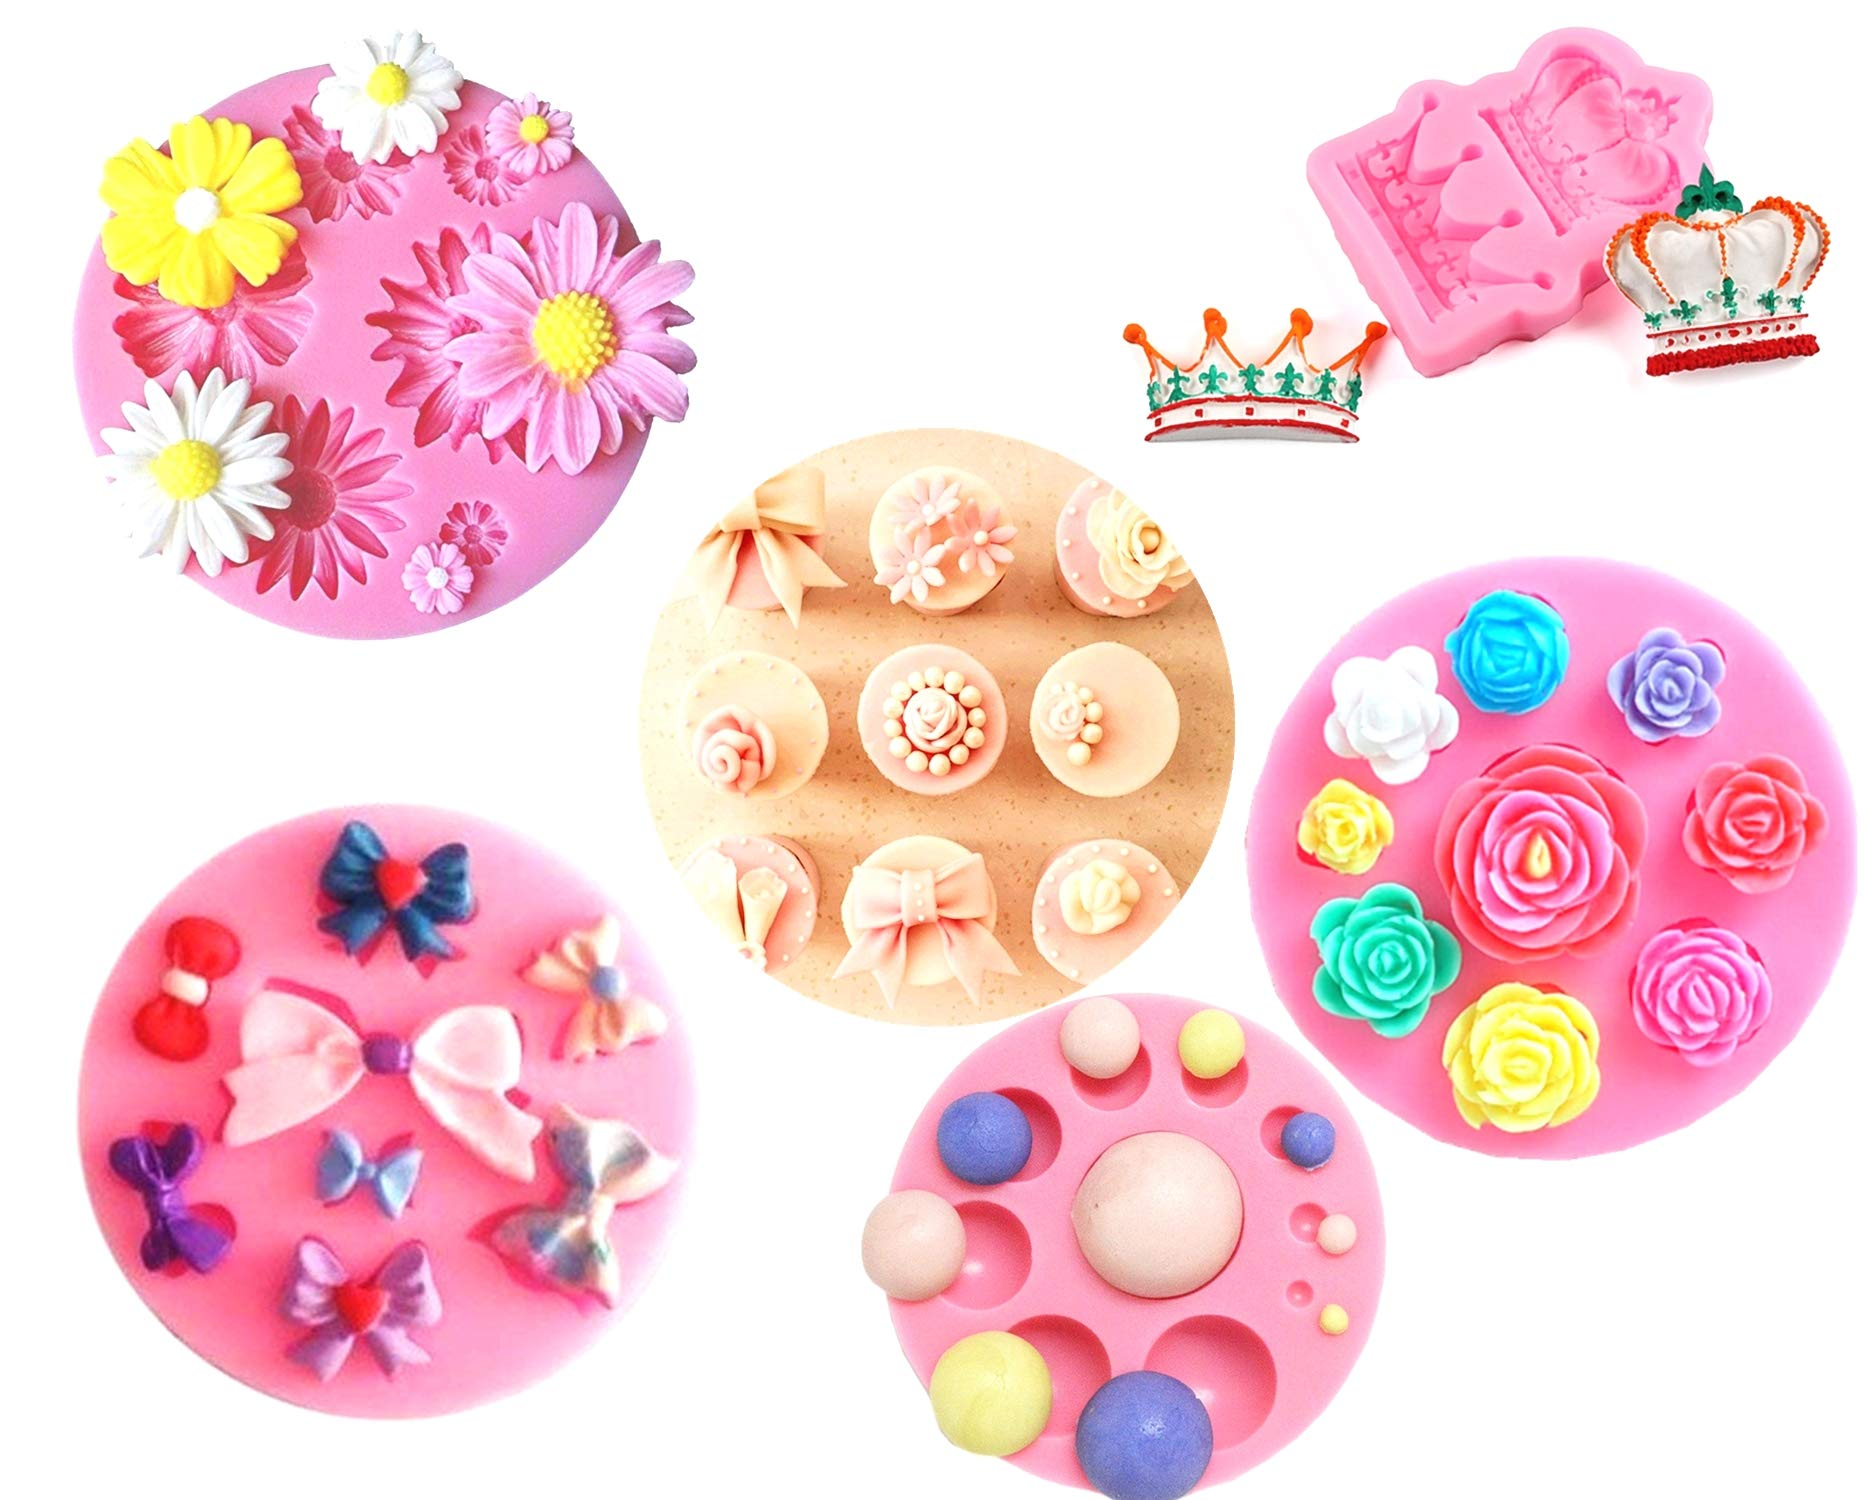 stbeyond Fondant Candy Silicone Mold – Crown, Rose, Bow, Dome, Daisy mold - for Sugarcraft, Cake Decoration, Cupcake Topper, Chocolate, Pastry, Cookie Decor, Jewelry, Polymer Clay, Epoxy Resin (5pack)